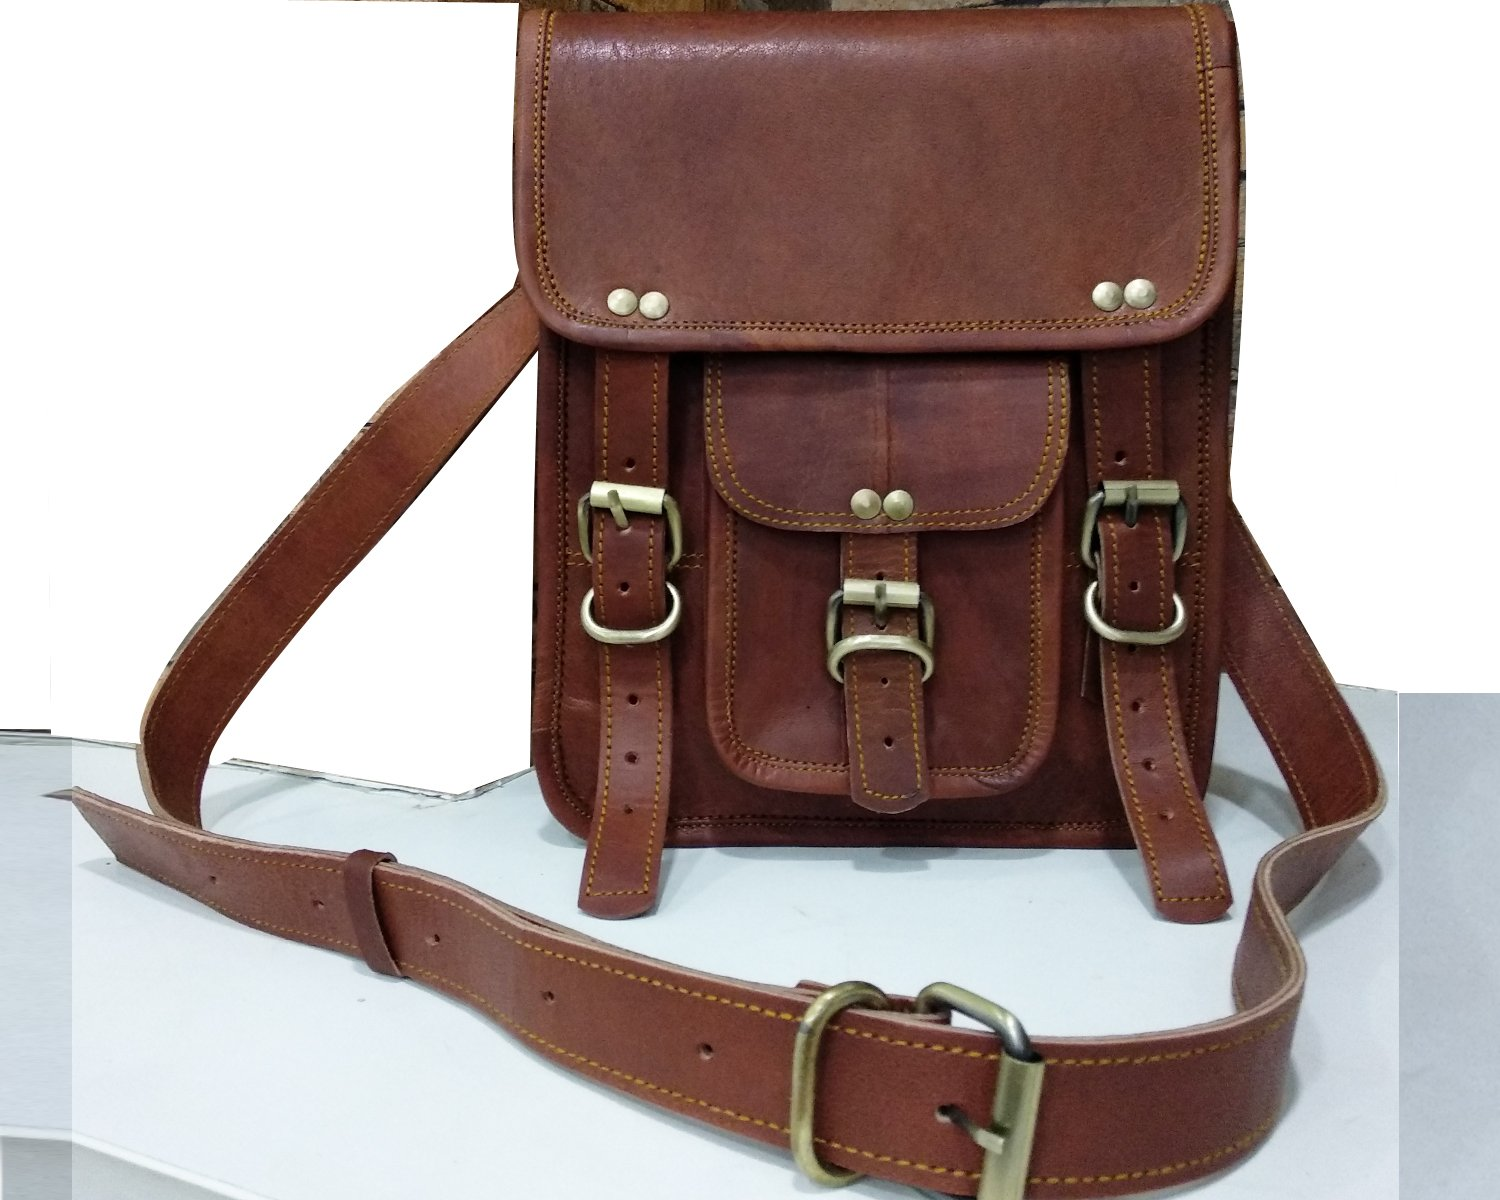 Mother's Day Gift Prime Leather Shoulder Bag Leather Messenger Bag Leather Ipad Bag satchel bag 9x11 by Fair Deal (Image #1)